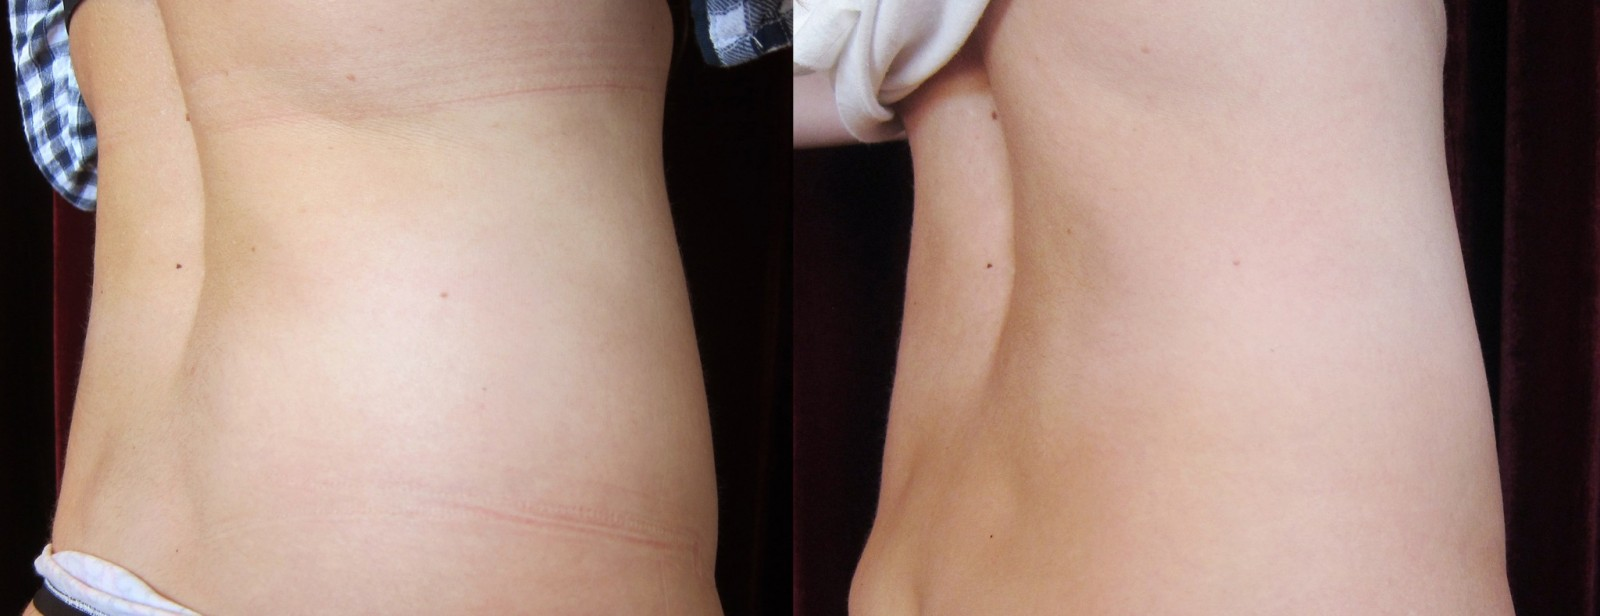 Body contouring Liposonix before and after